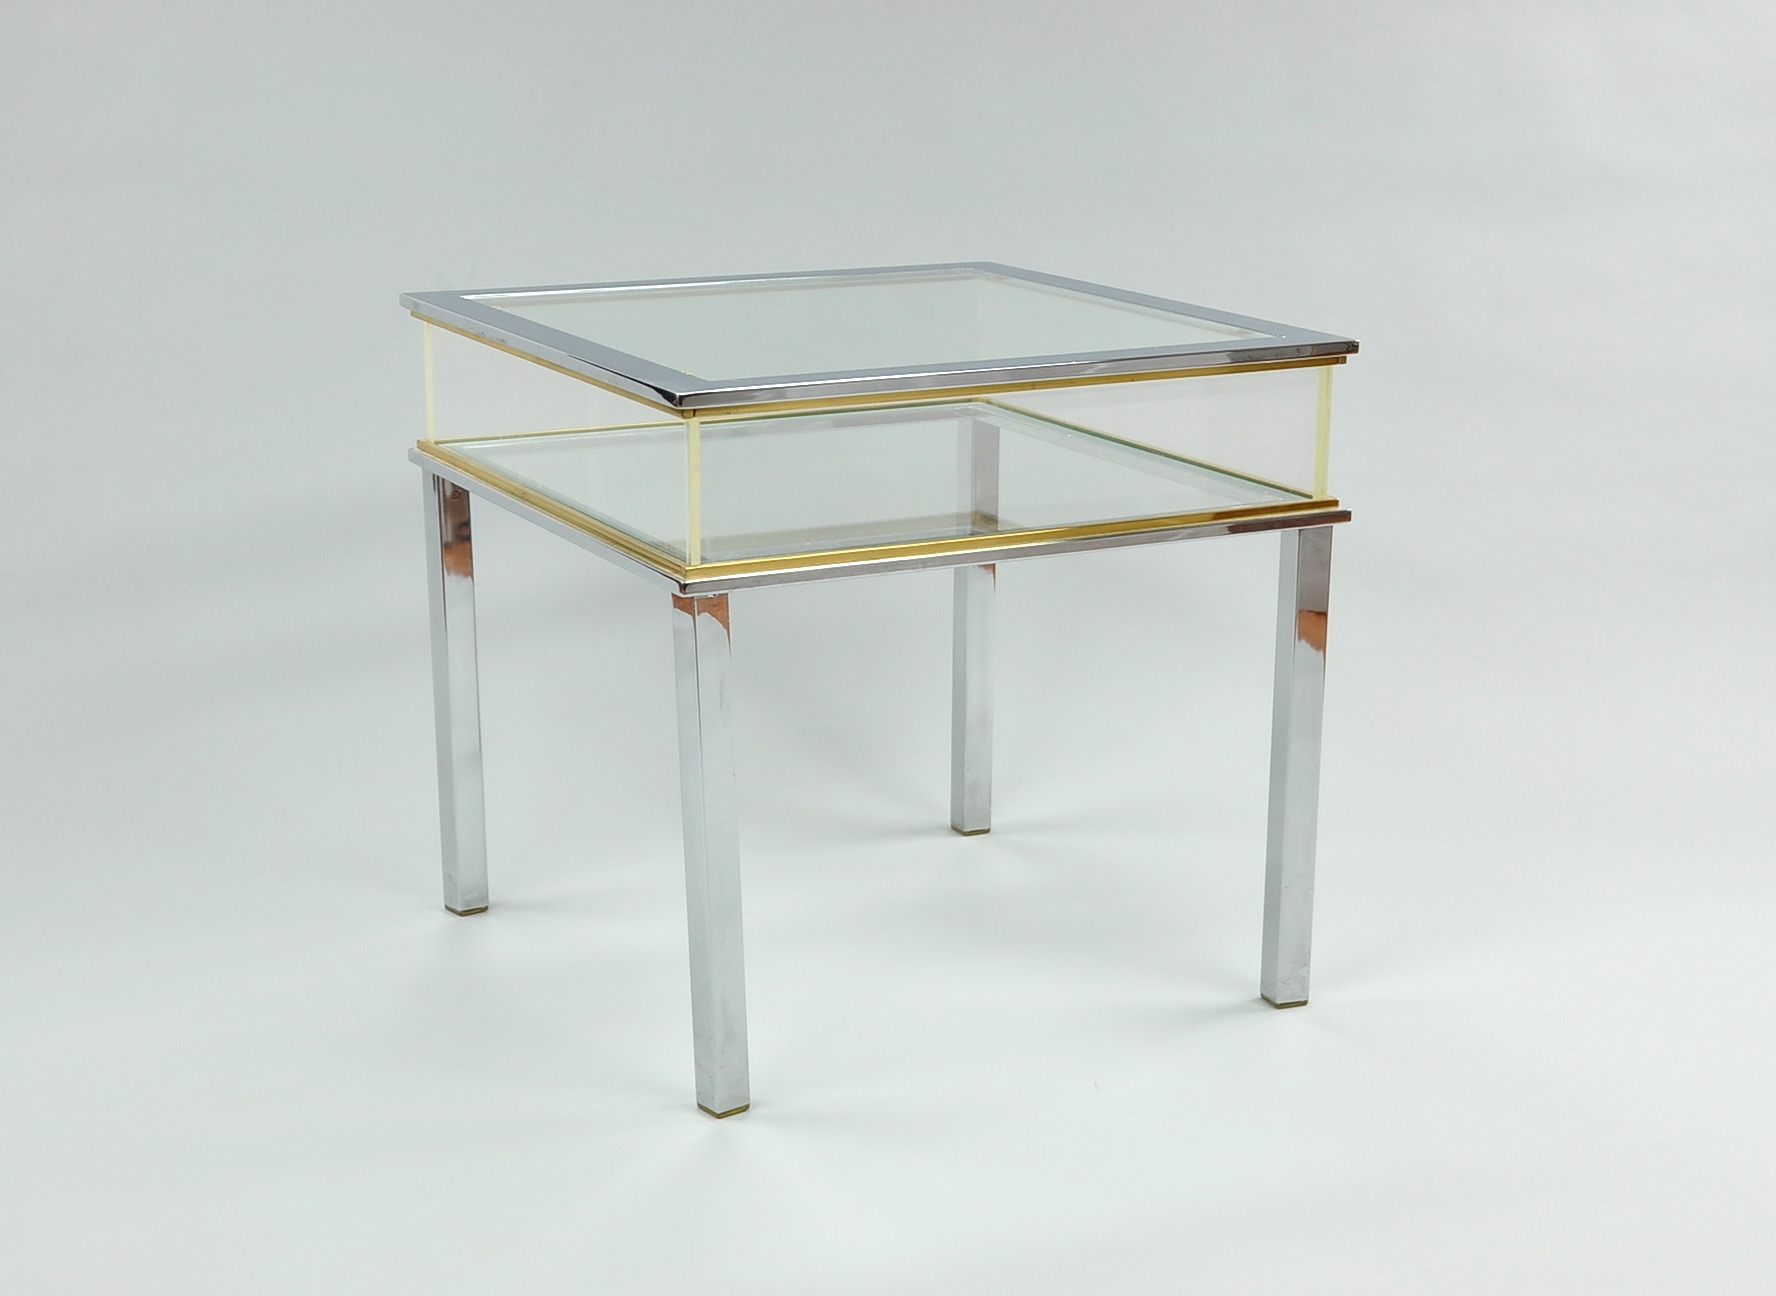 A Glass Acrylic and Chrome Display Table 09 26 09 Sold $241 5